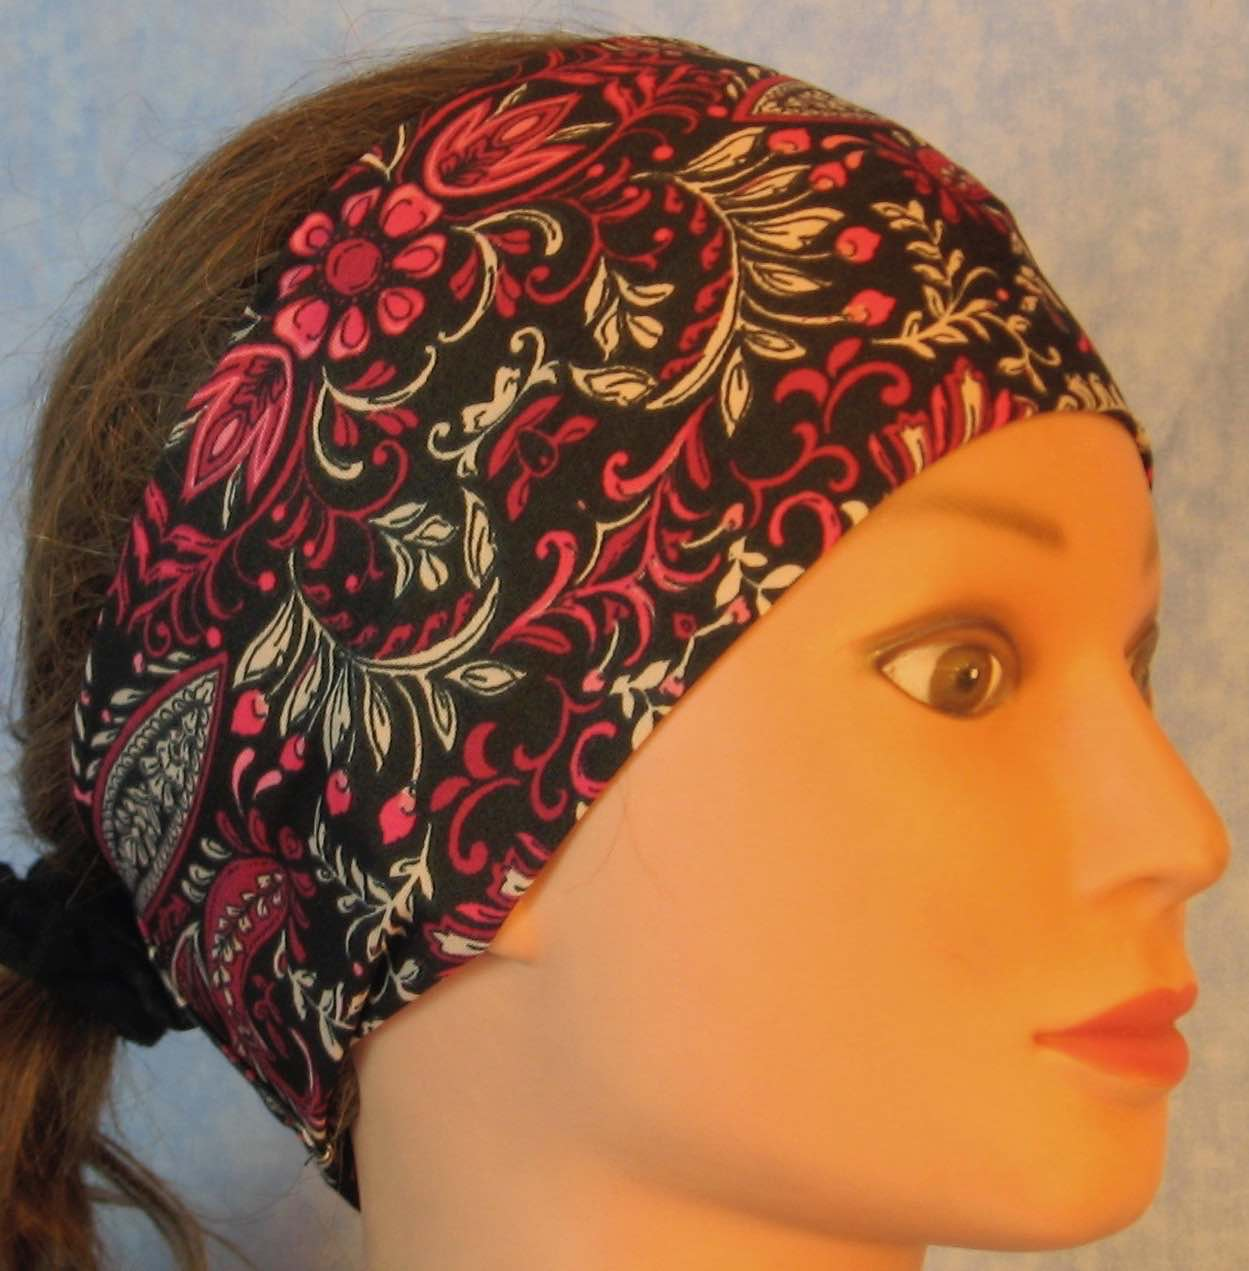 Headband-Pink Flower Paisley Leaves on Black-right